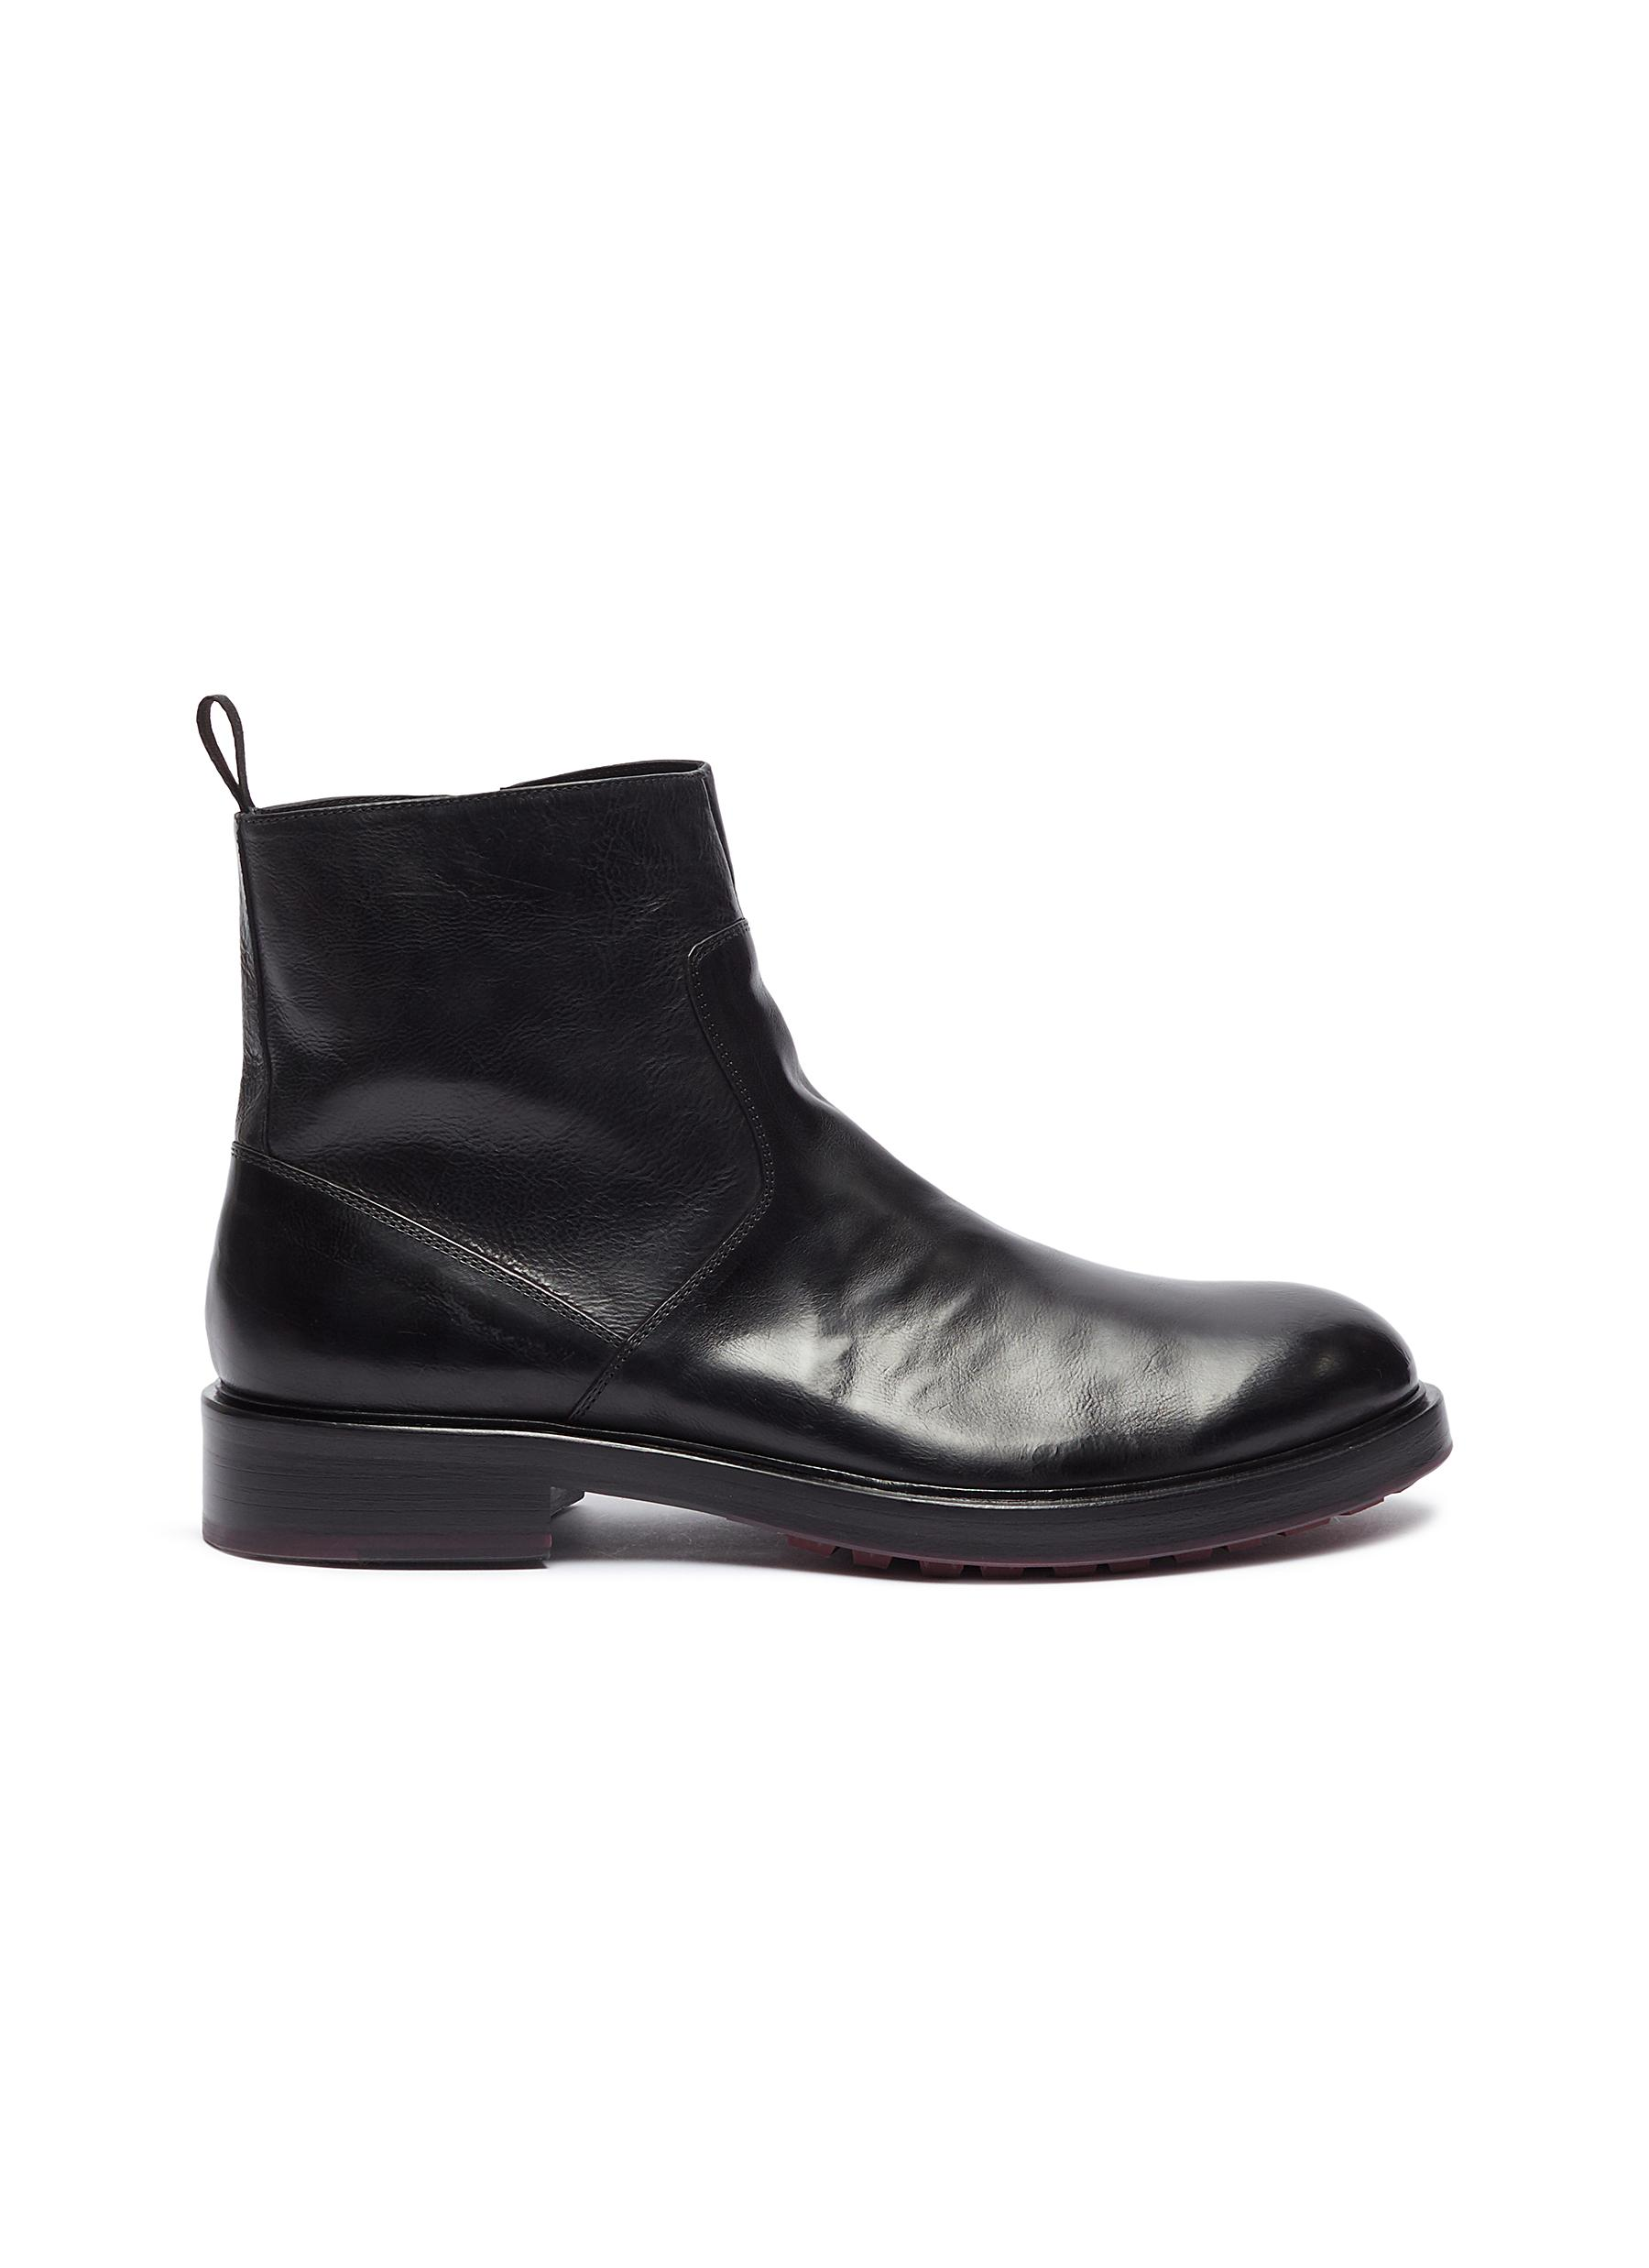 Todi leather ankle boots by ANTONIO MAURIZI